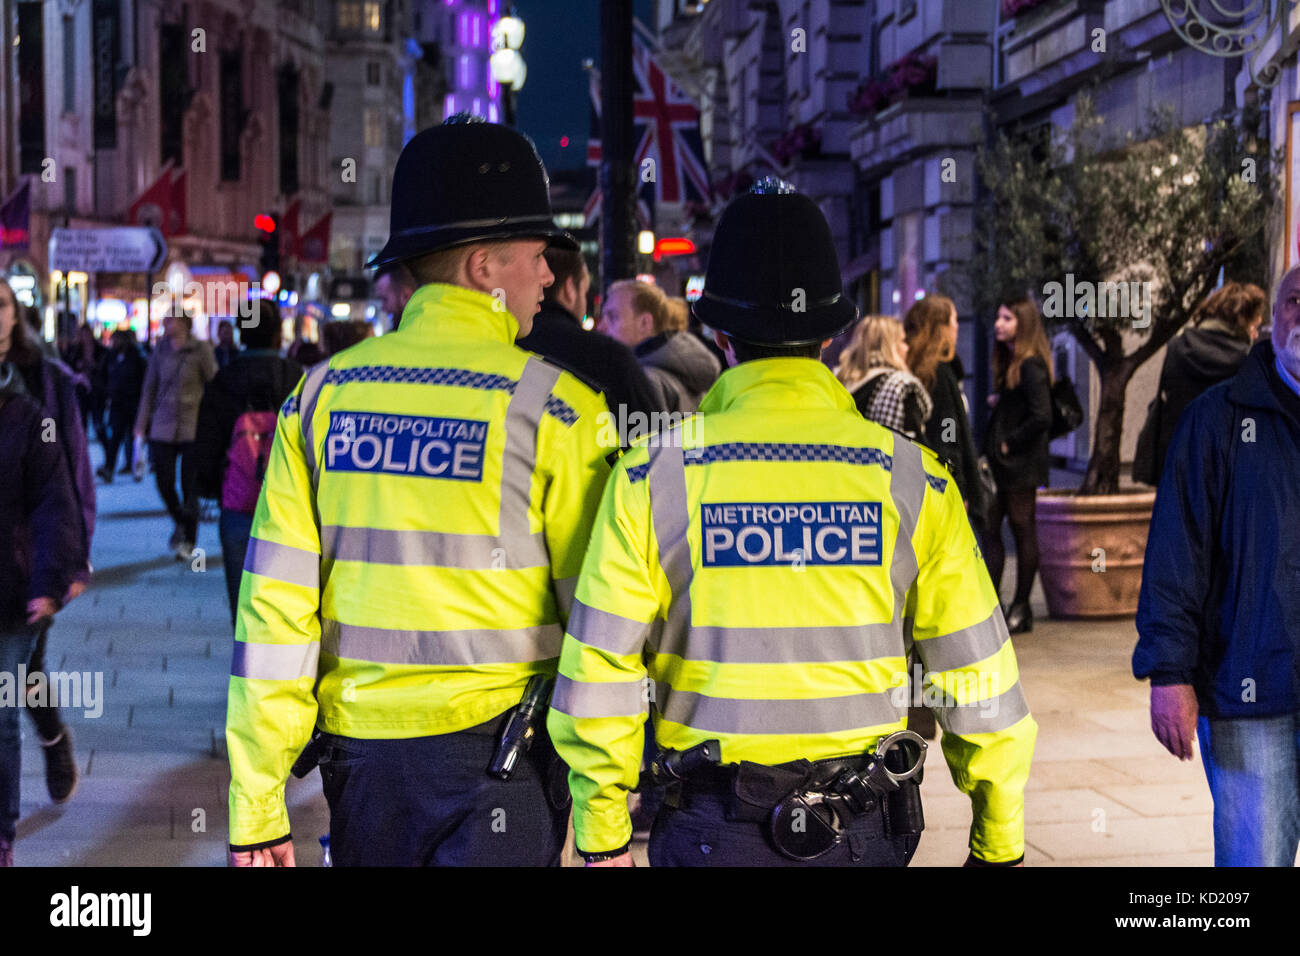 Two 'Bobbies' patrolling their beat in Piccadilly Circus, London, UK Stock Photo